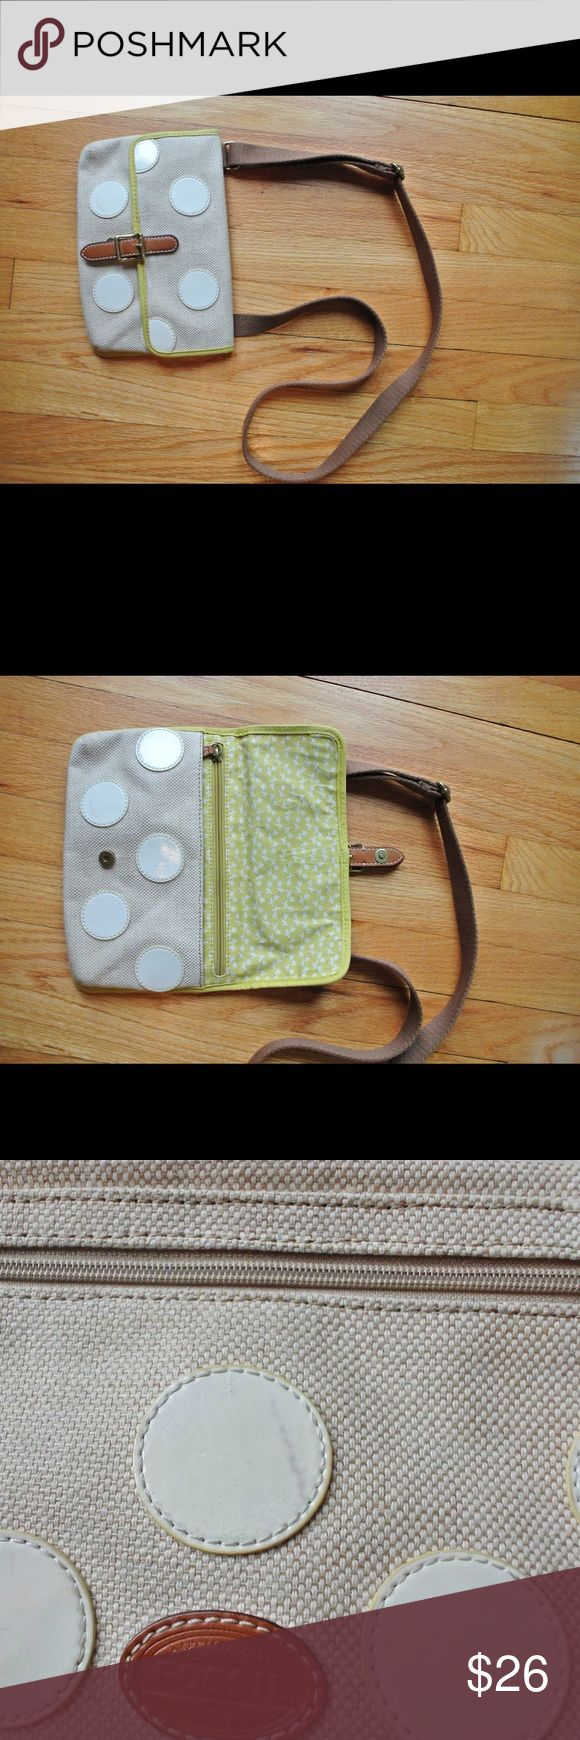 Fossil polka dot mini shoulder bag! Fossil polka dot mini shoulder bag! This is in really good shape except for a tiny scuff on the back. The lining is very clean and it hits at about the hip! Fossil Bags Crossbody Bags